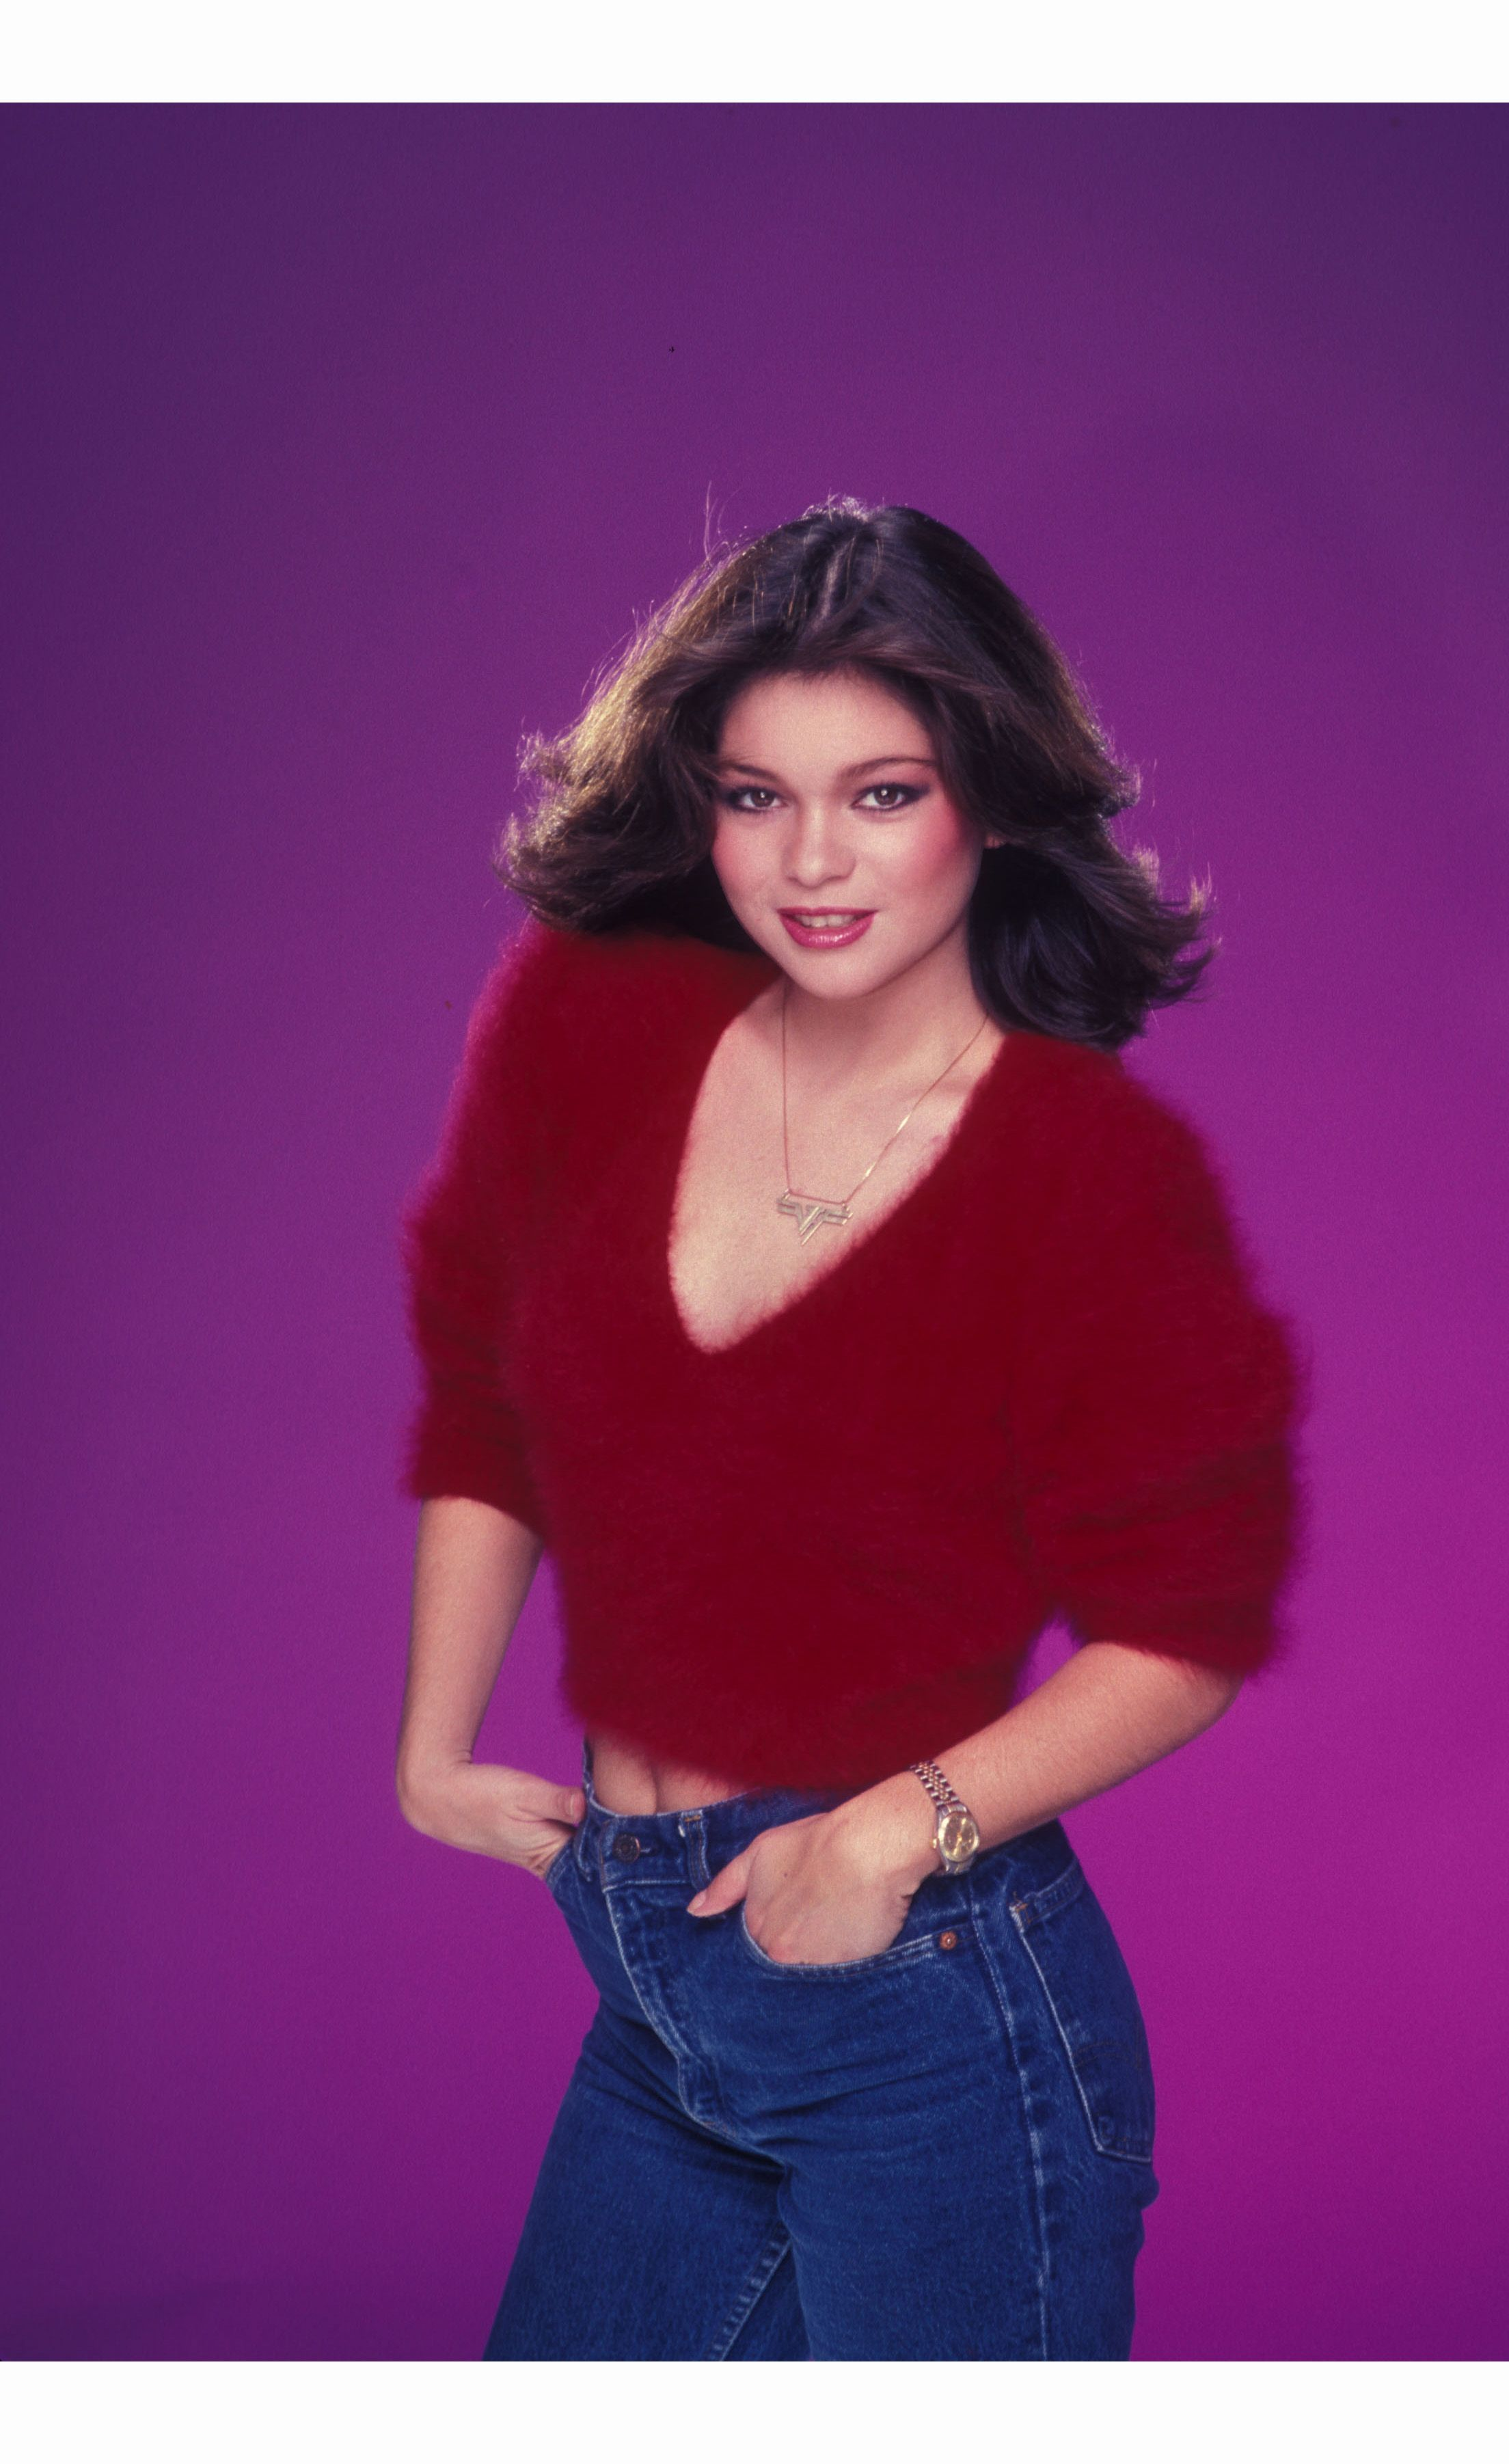 Valerie Bertinelli Poses For An Photo Session On June 22 1985 In Los Angeles California C2a9 Harry Langdon J Valerie Bertinelli Celebrities Celebrity Portraits